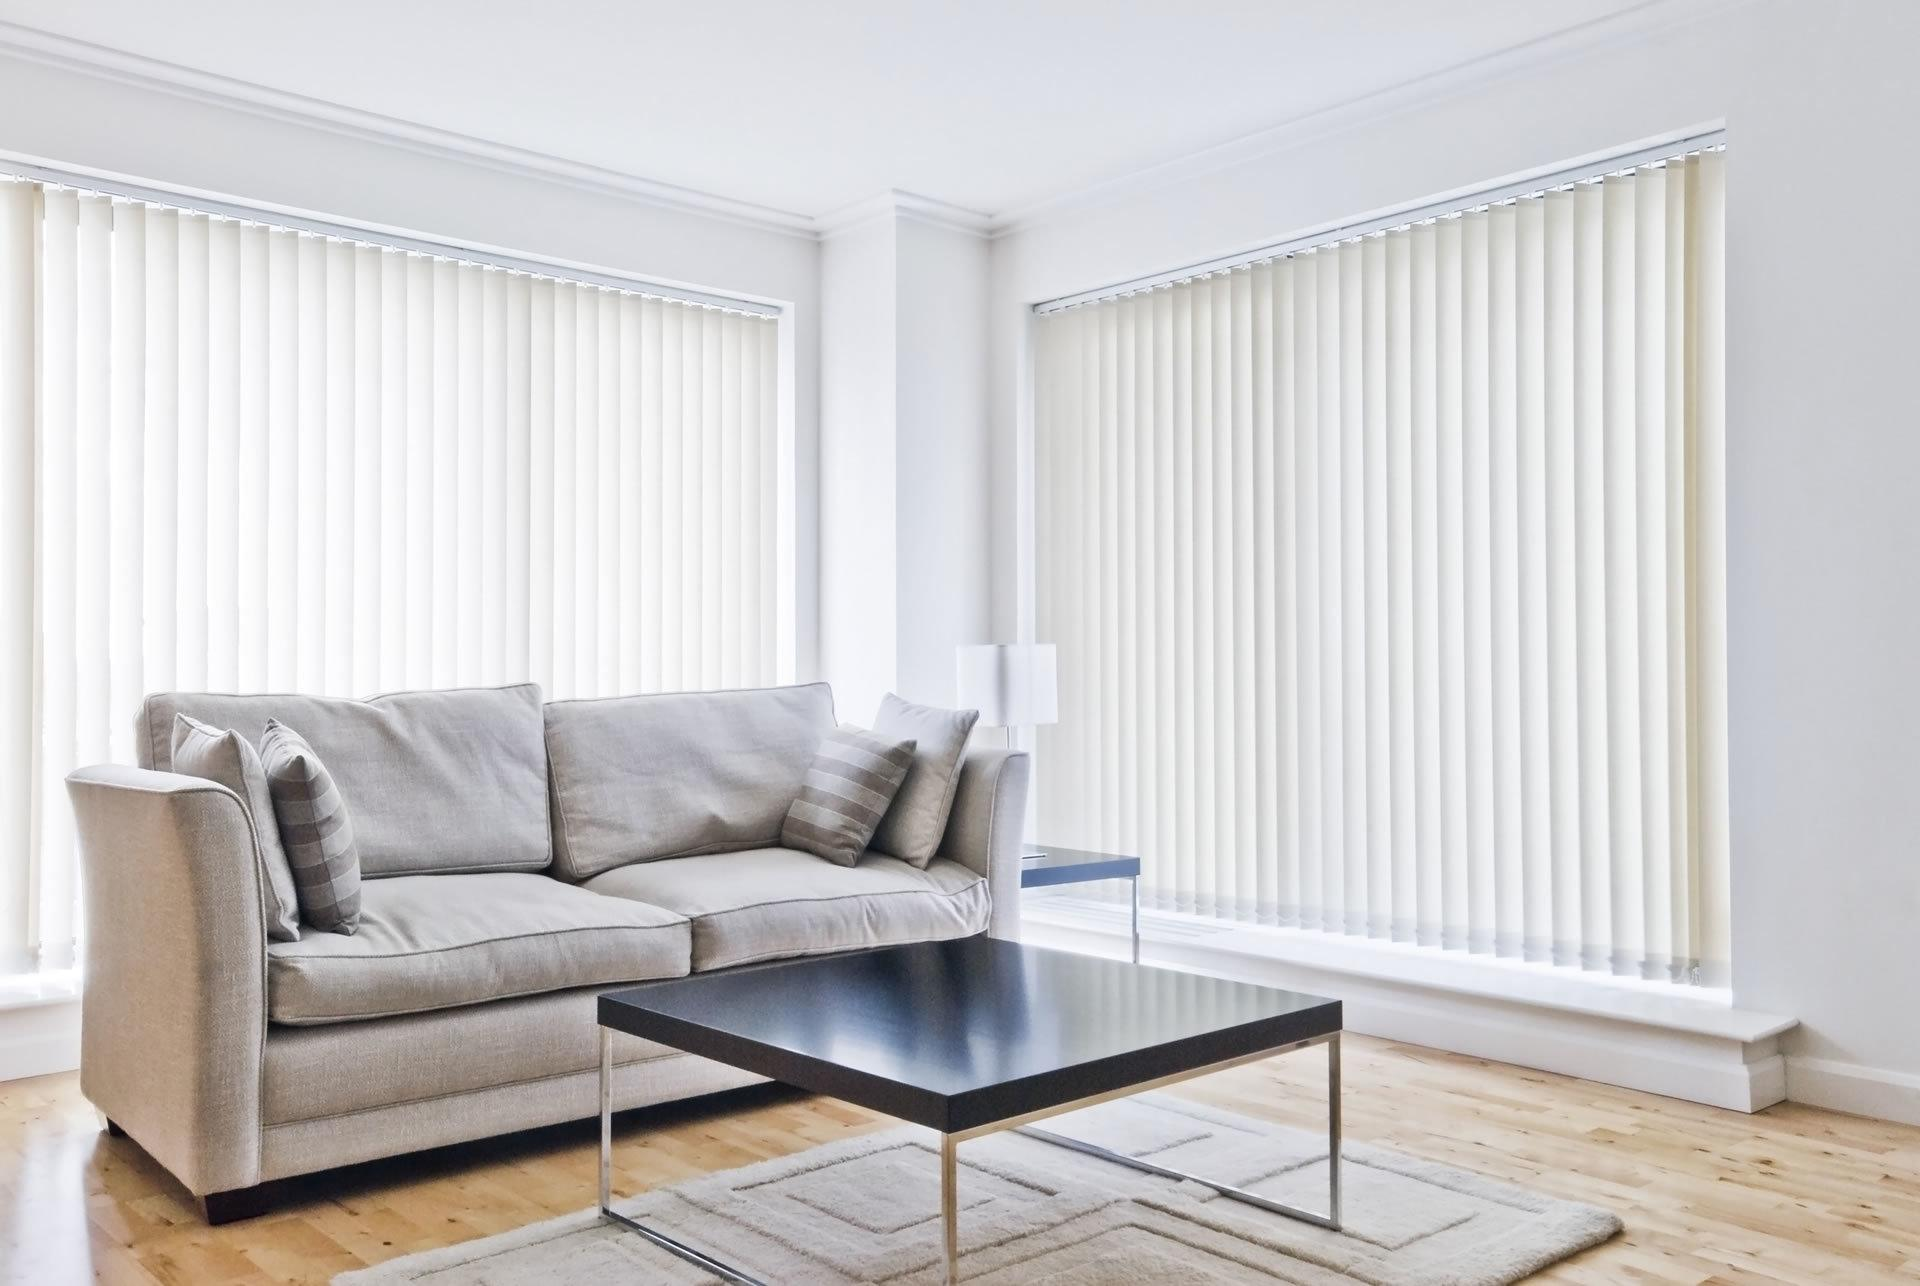 about blinds nottingham - About Us